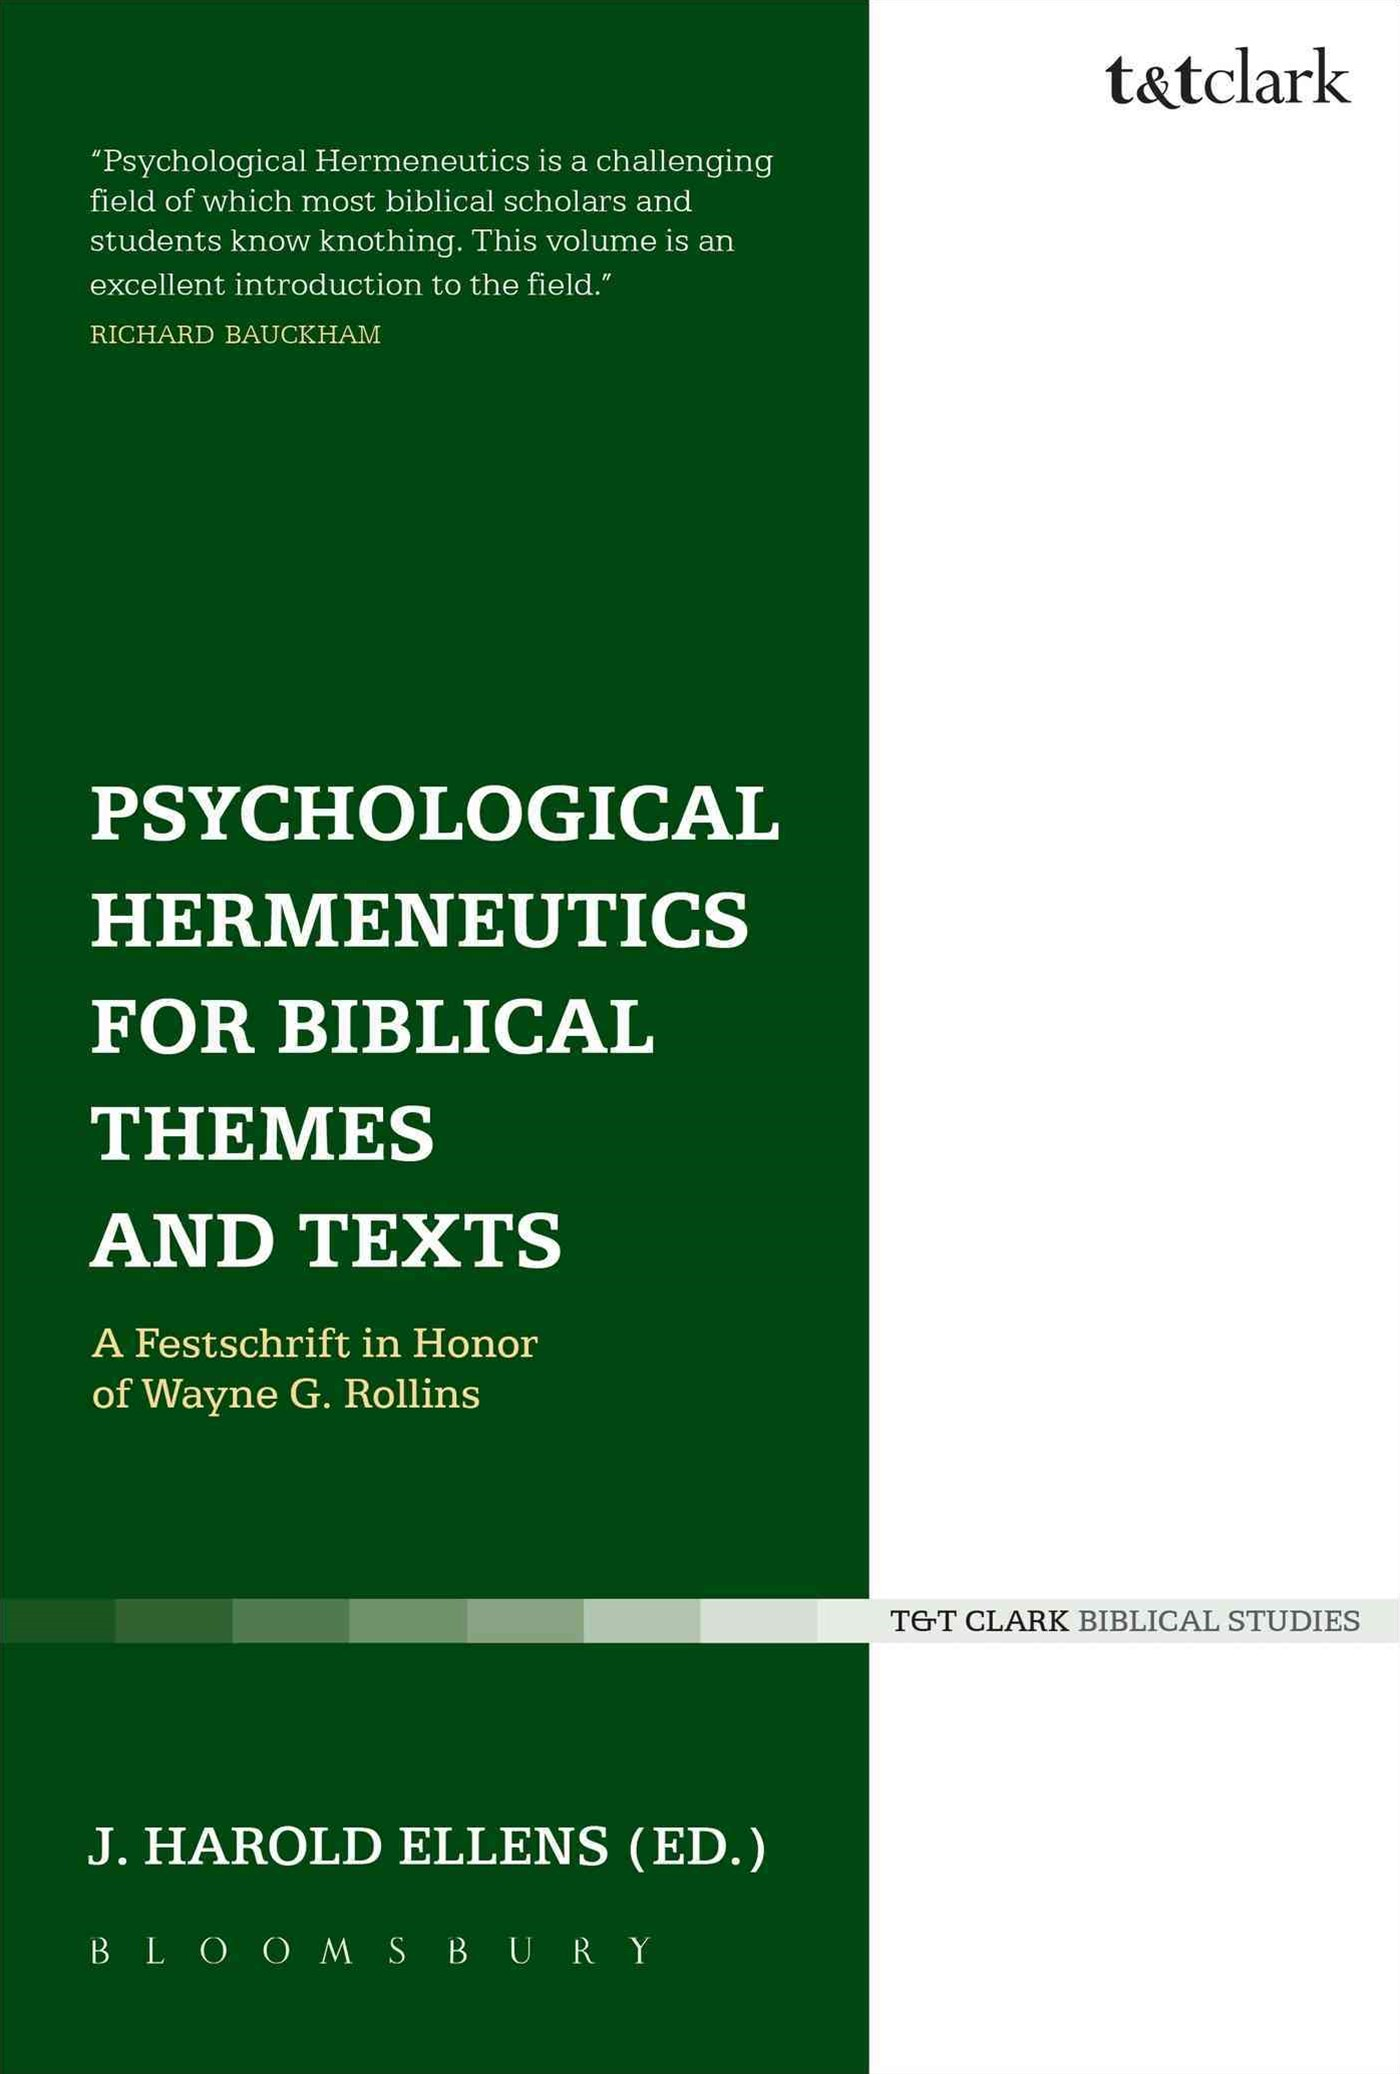 Psychological Hermeneutics for Biblical Themes and Texts